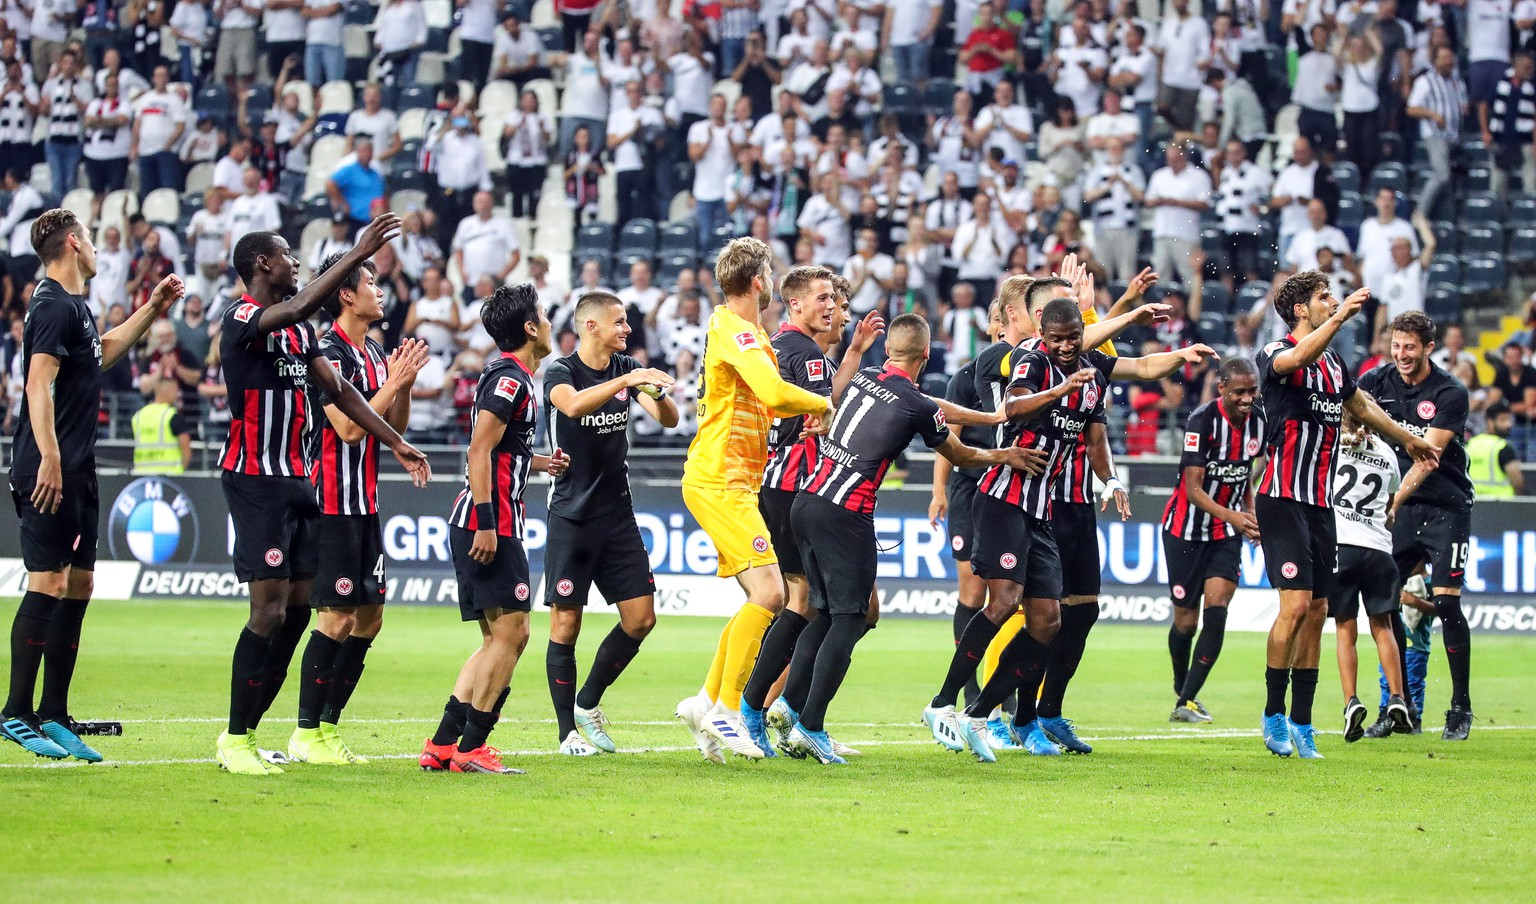 epa07752550 Eintracht Frankfurt players celebrate after the UEFA Europa League second qualifying round, second leg soccer match between Eintracht Frankfurt and FC Flora Tallinn in Frankfurt Main, Germany, 01 August 2019.  EPA/ARMANDO BABANI